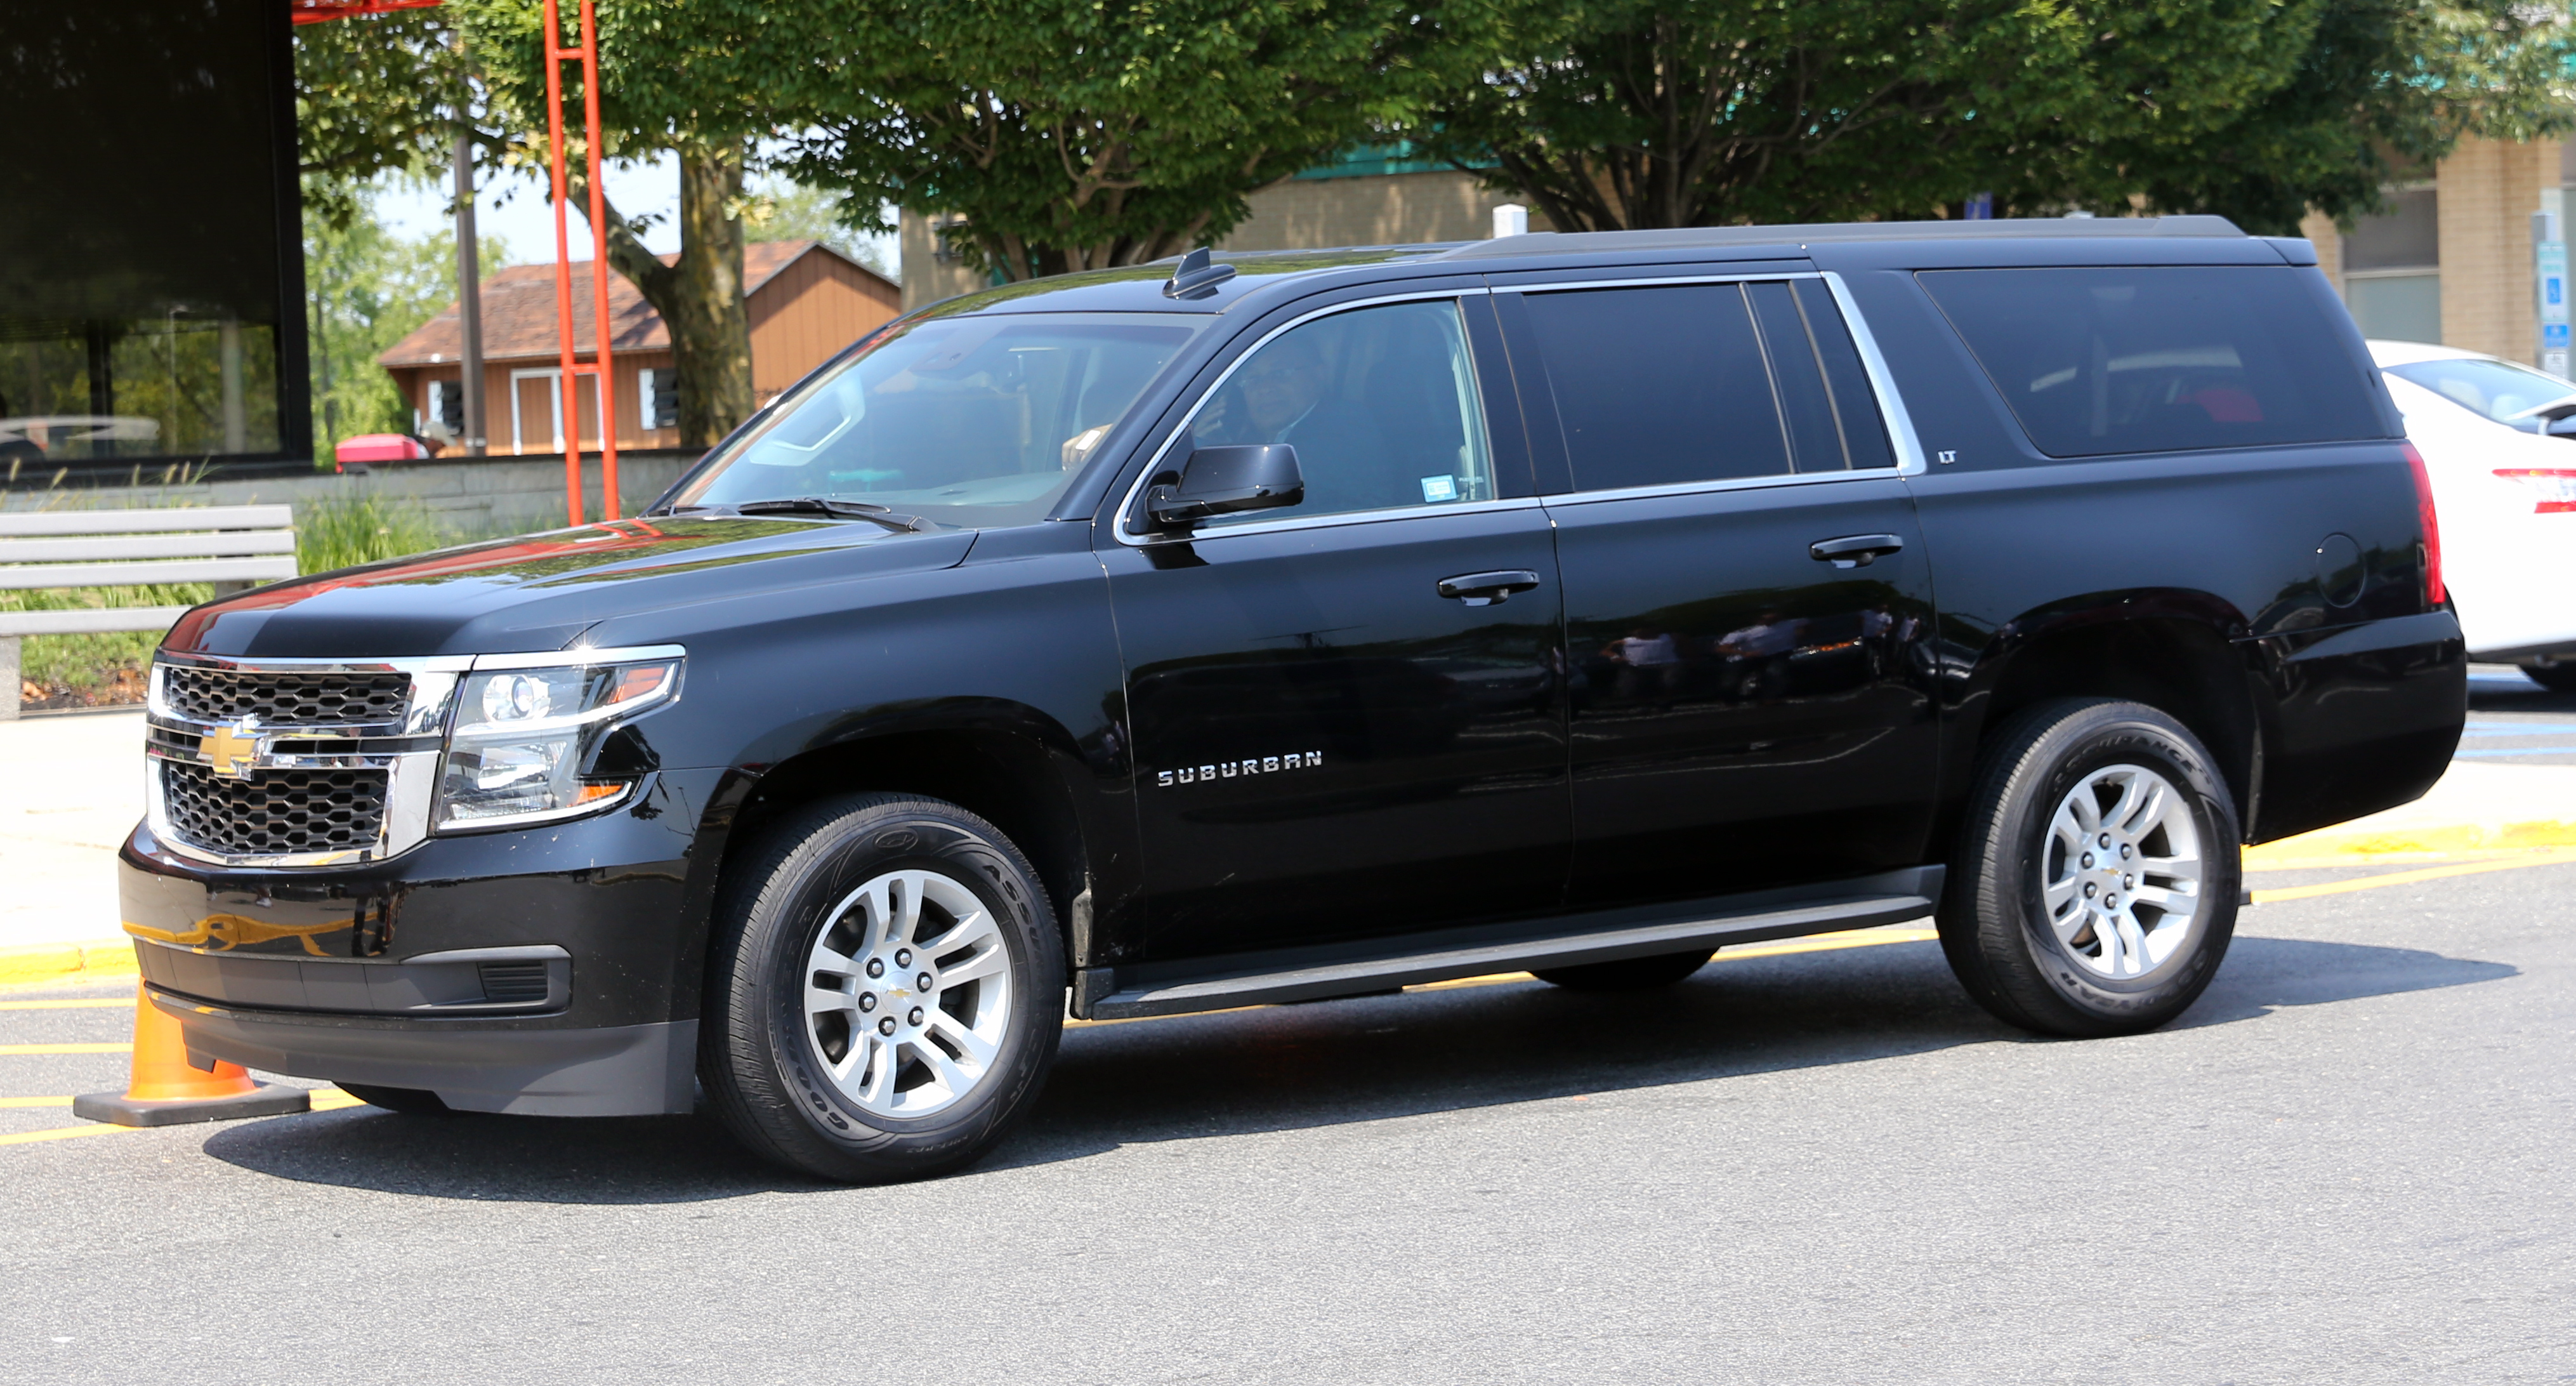 3-Chevrolet Suburban Executive SUV - A&A Limousine & Bus ...